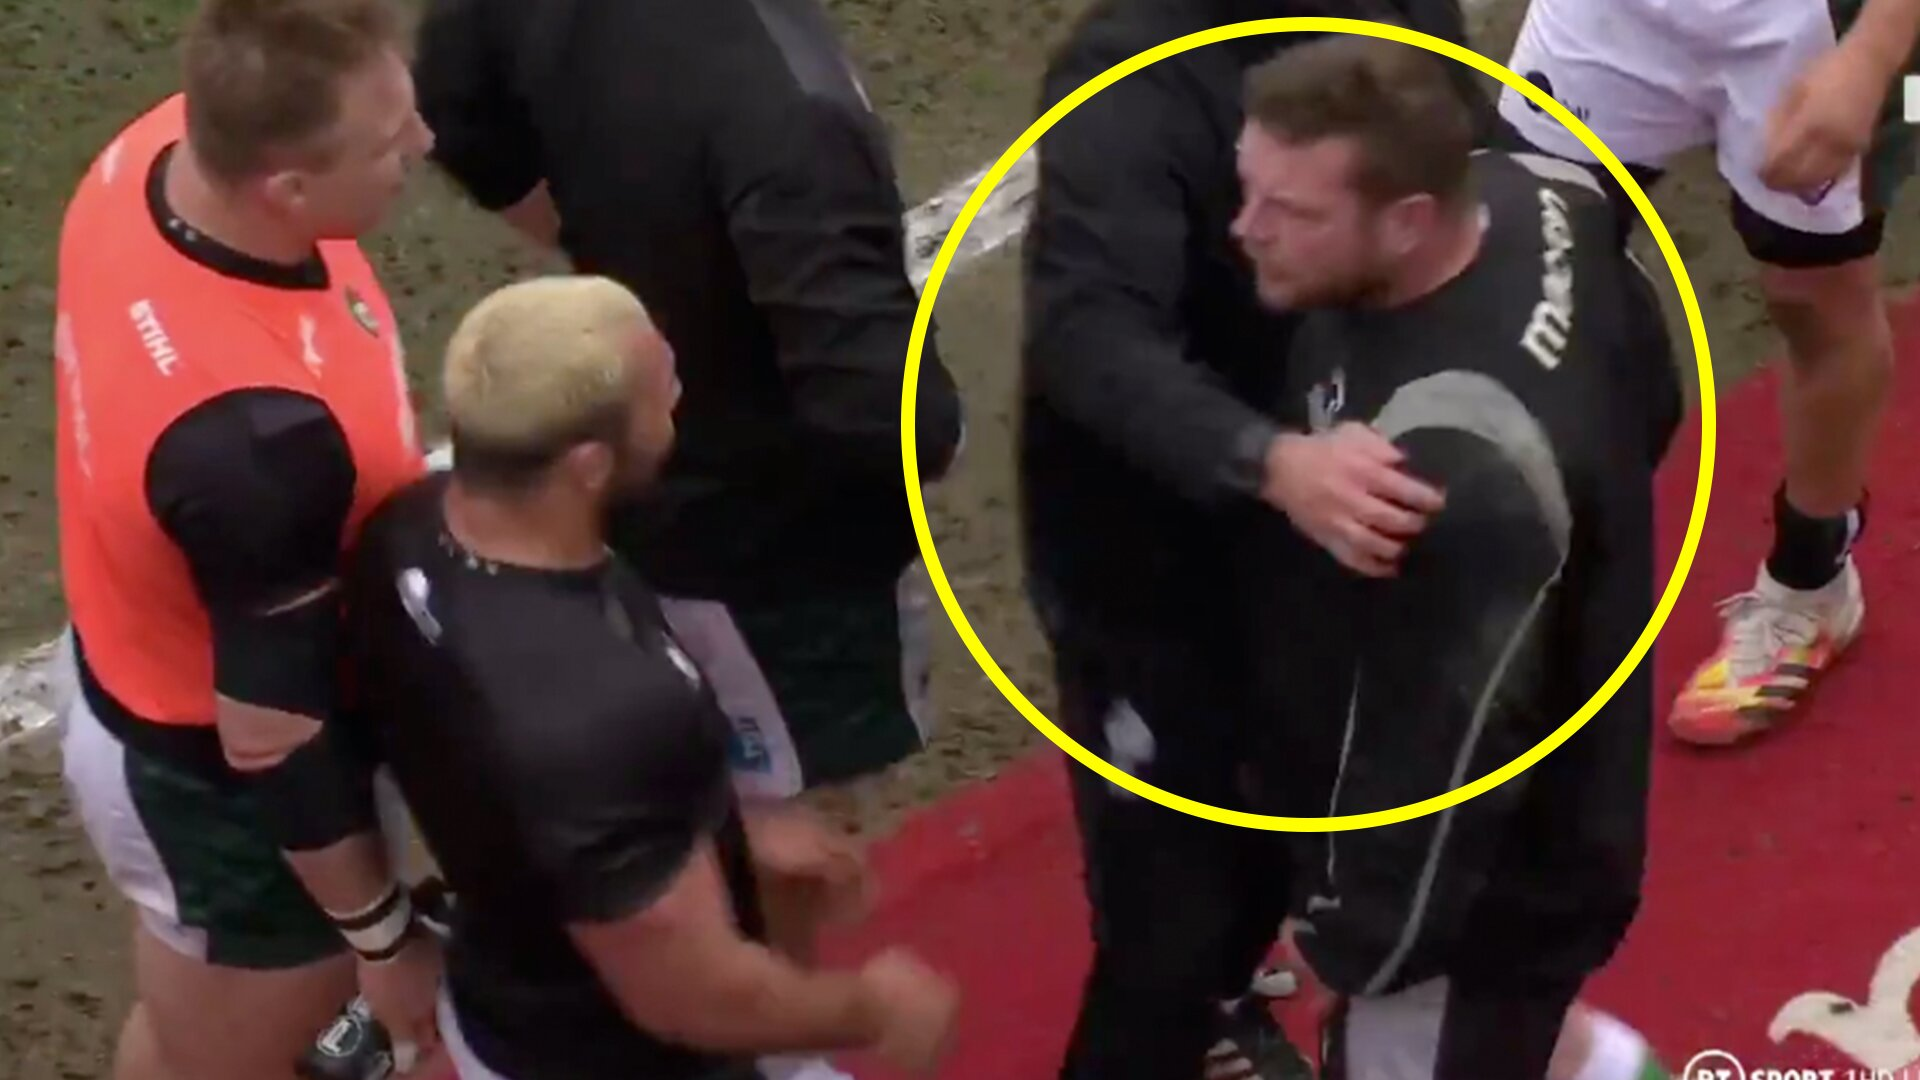 Ellis Genge back in firing line as footage shows bust up before Leicester Tigers match